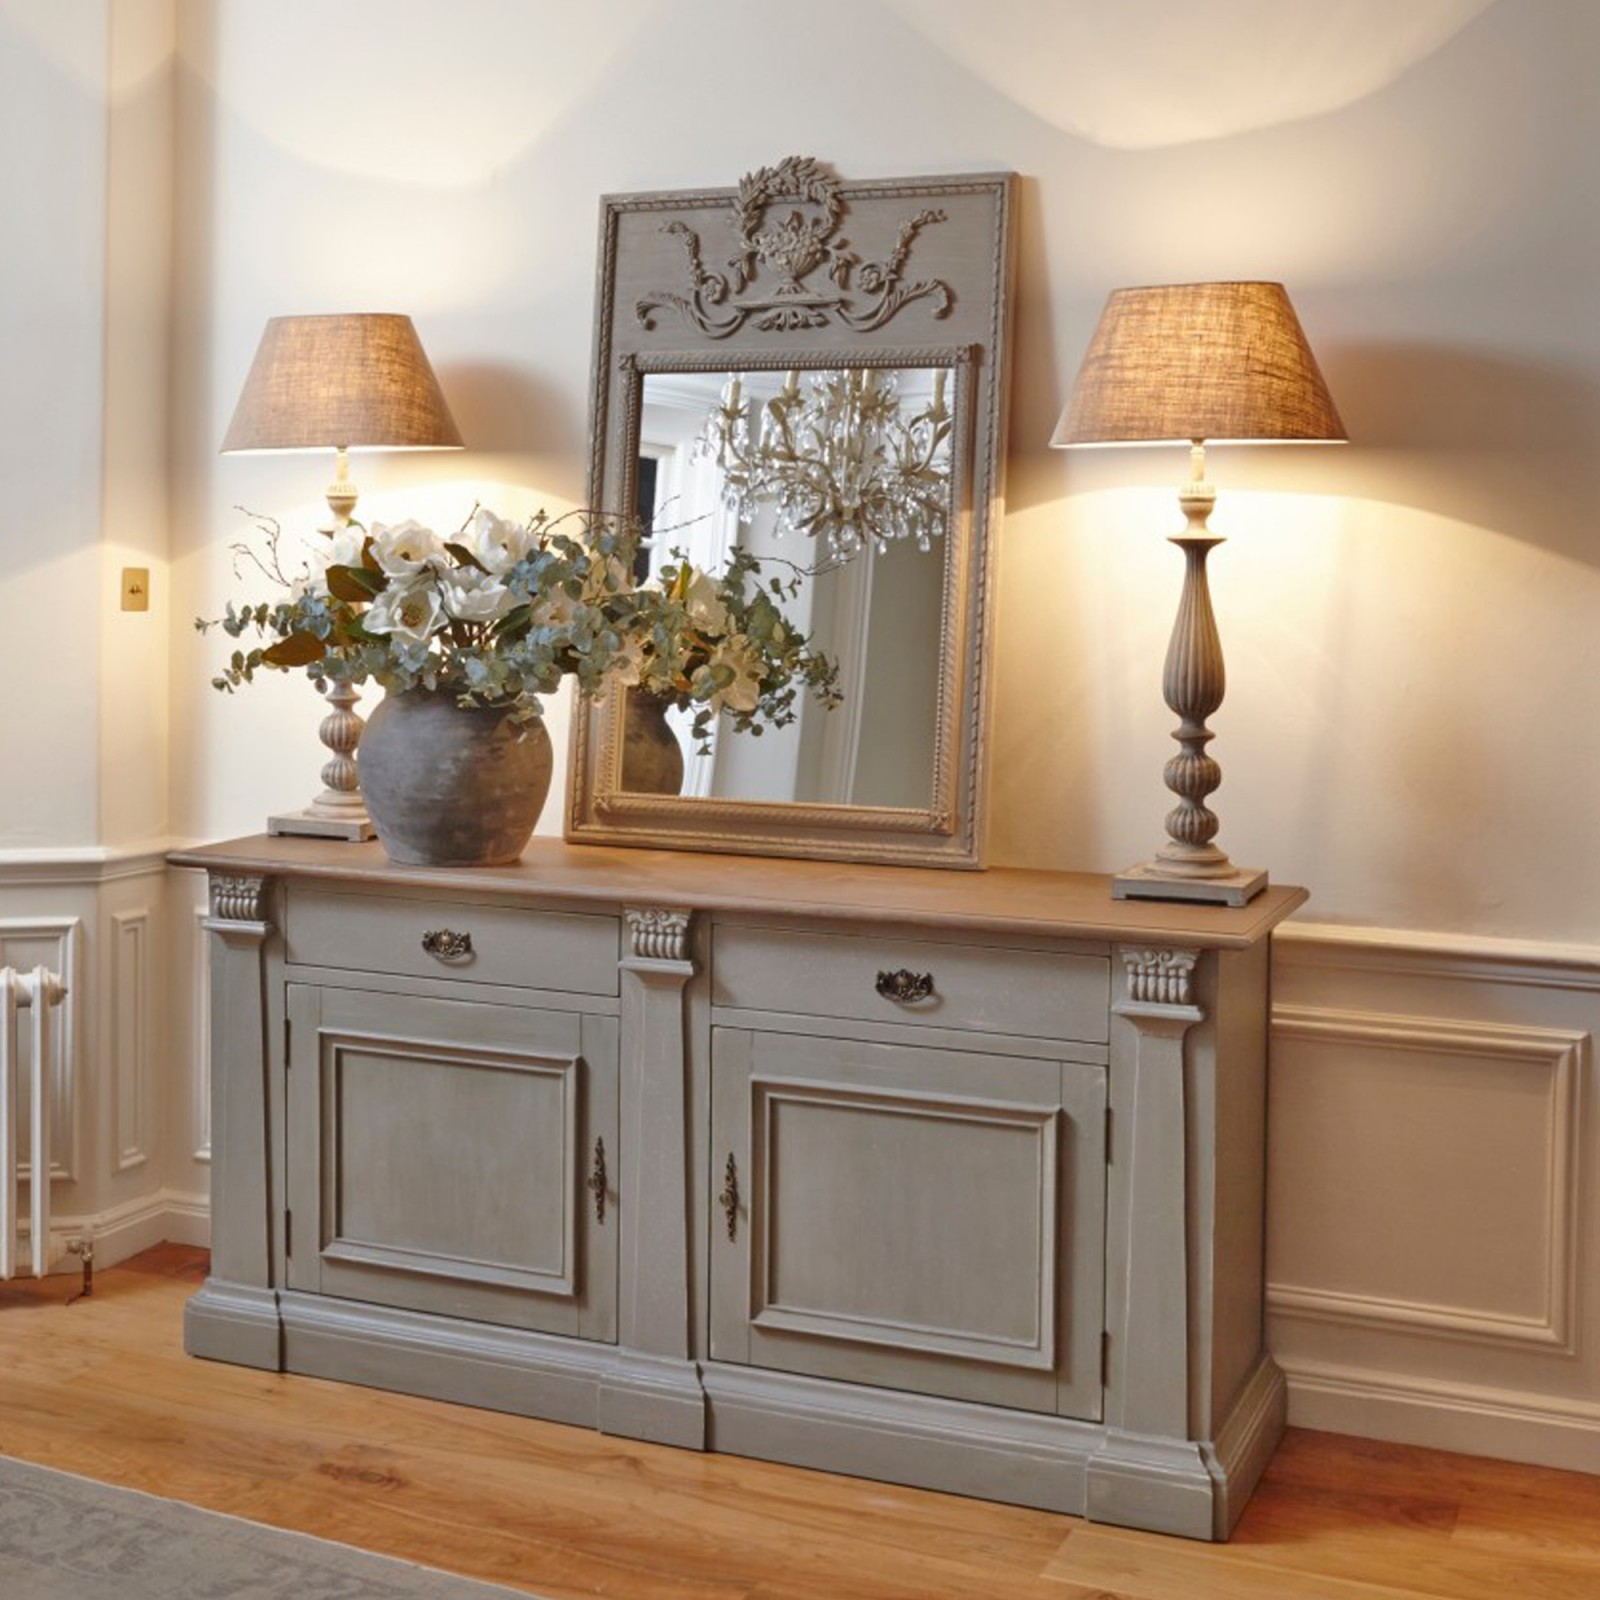 Distressed Grey Sideboard With Oak Top Furniture  La Maison Chic Luxury Interiors